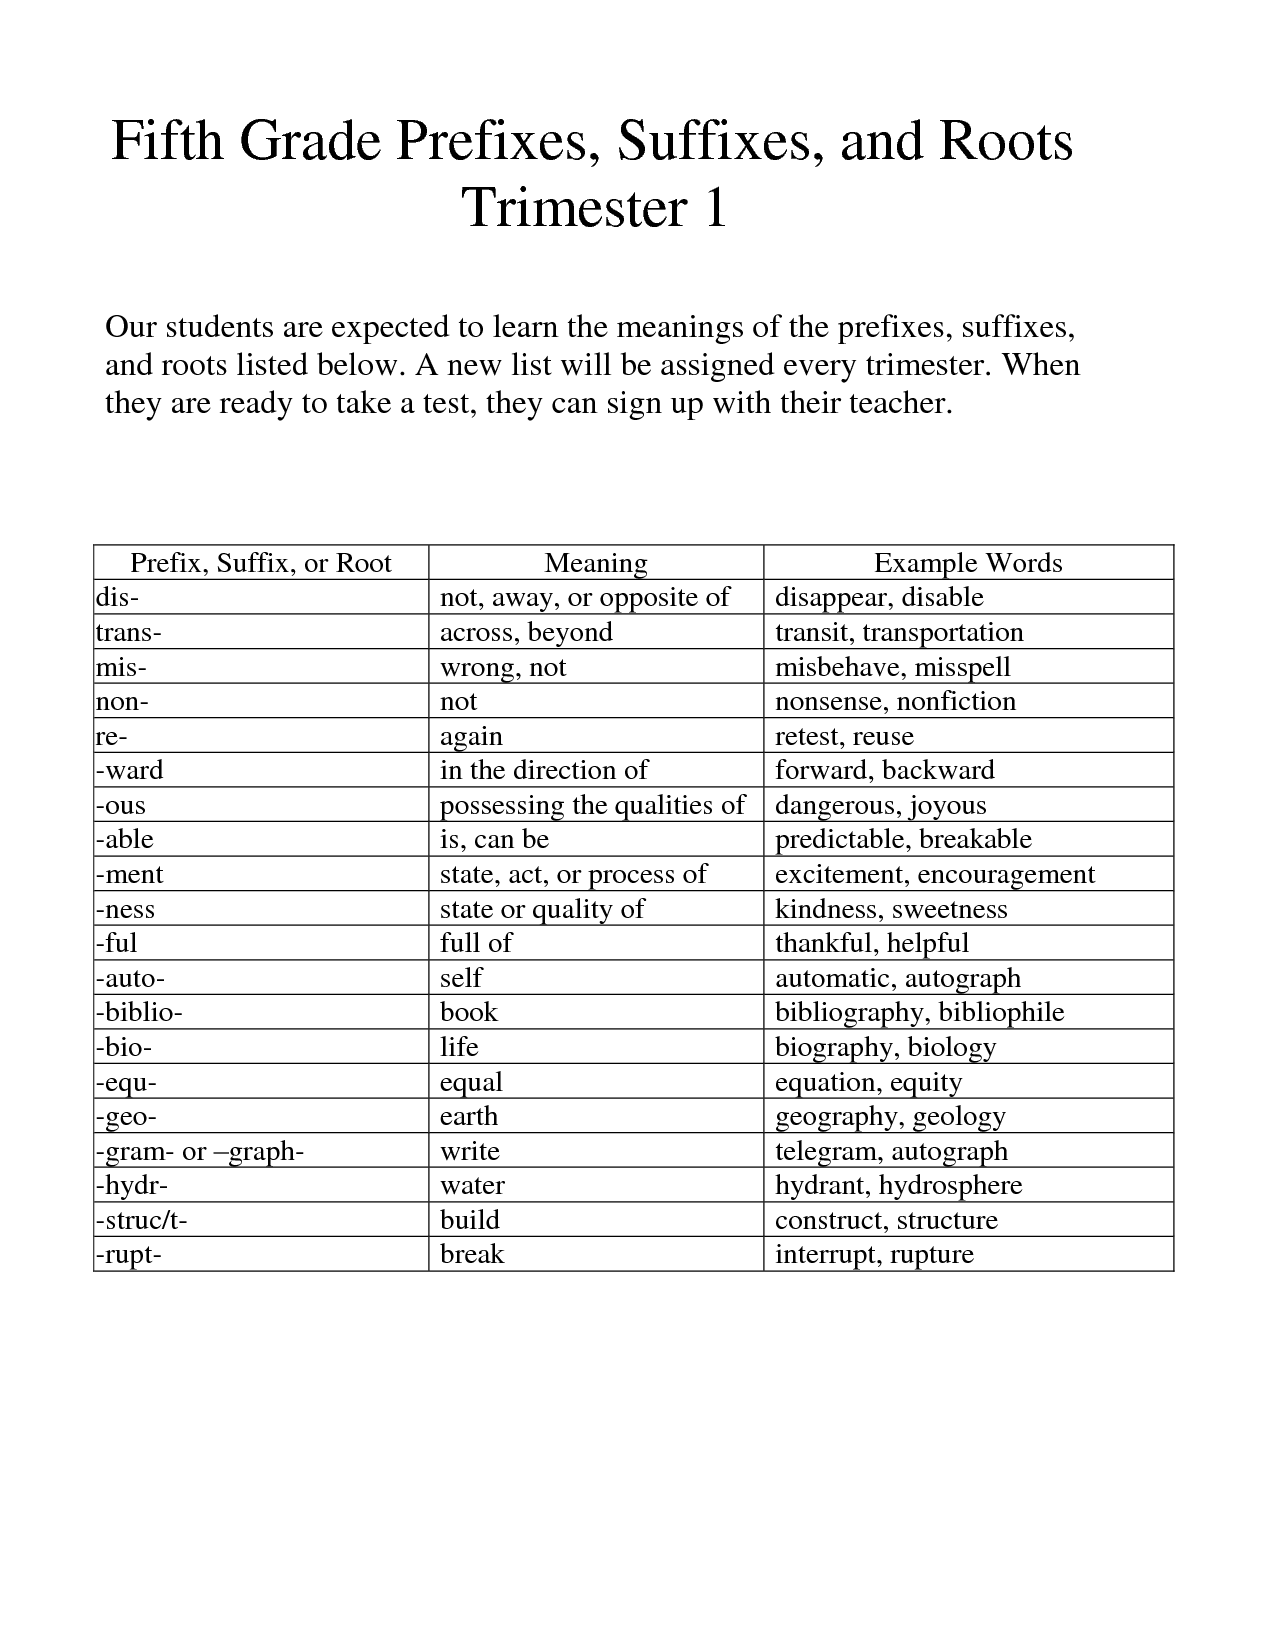 36 Stunning Prefix And Suffix Worksheets Ideas With